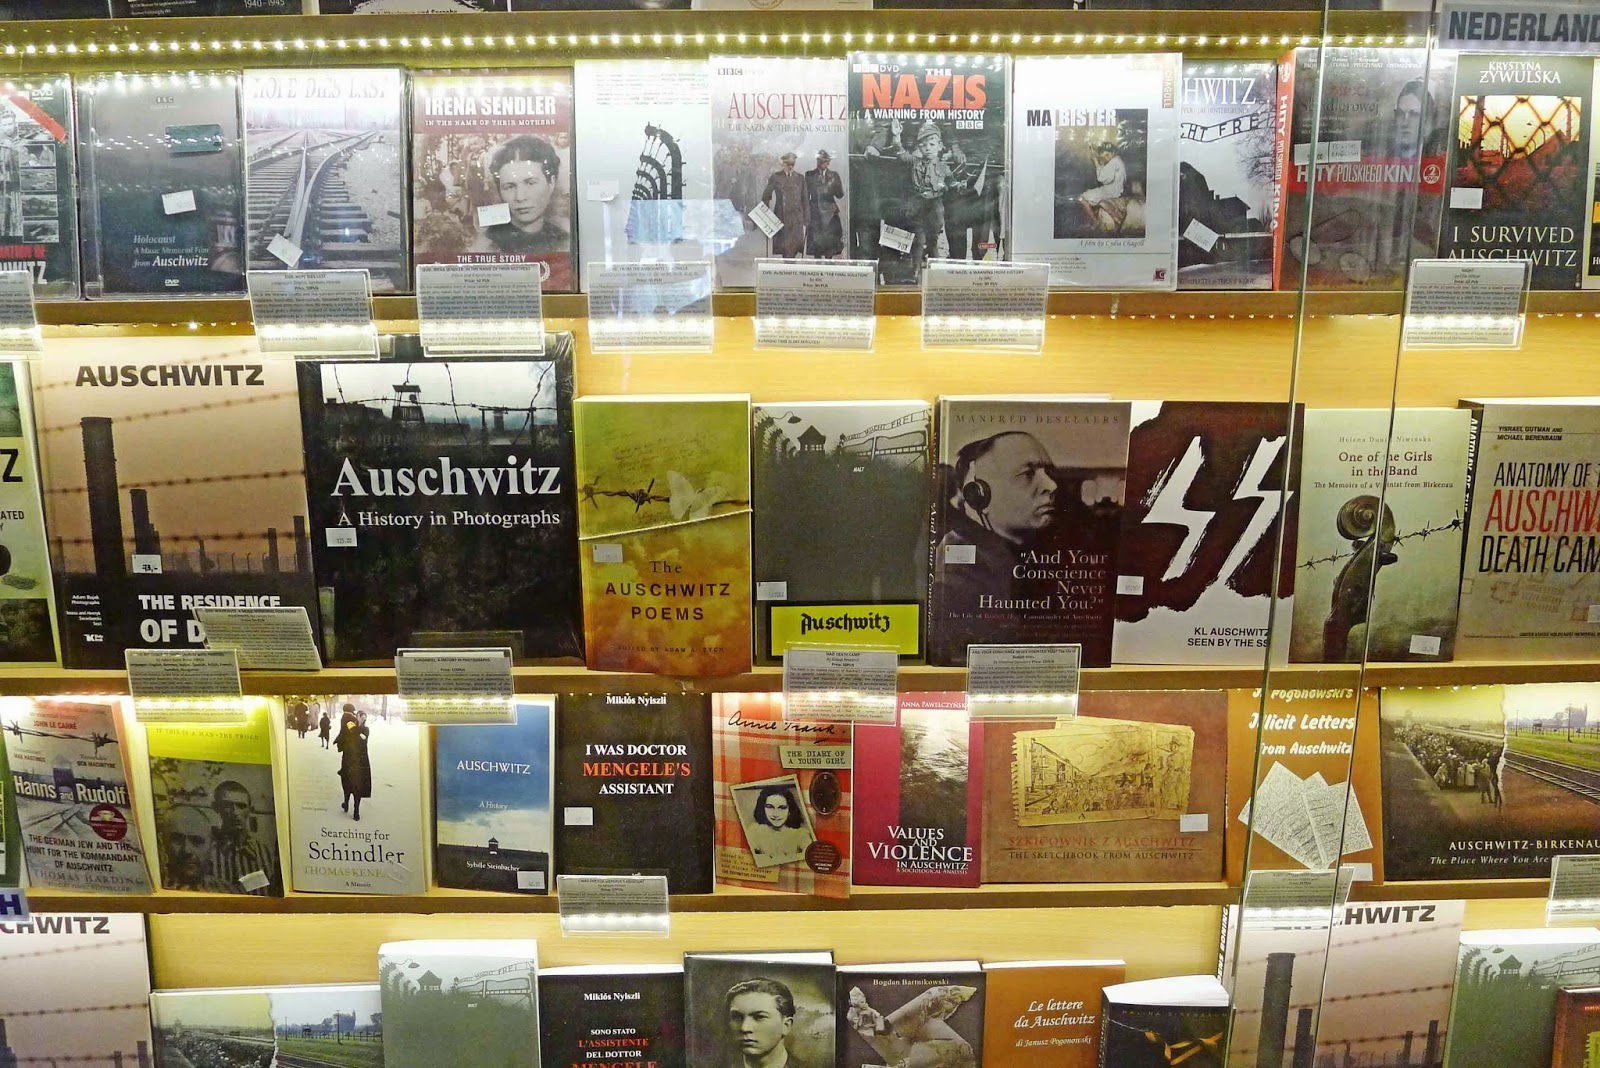 Books on Auschwitz